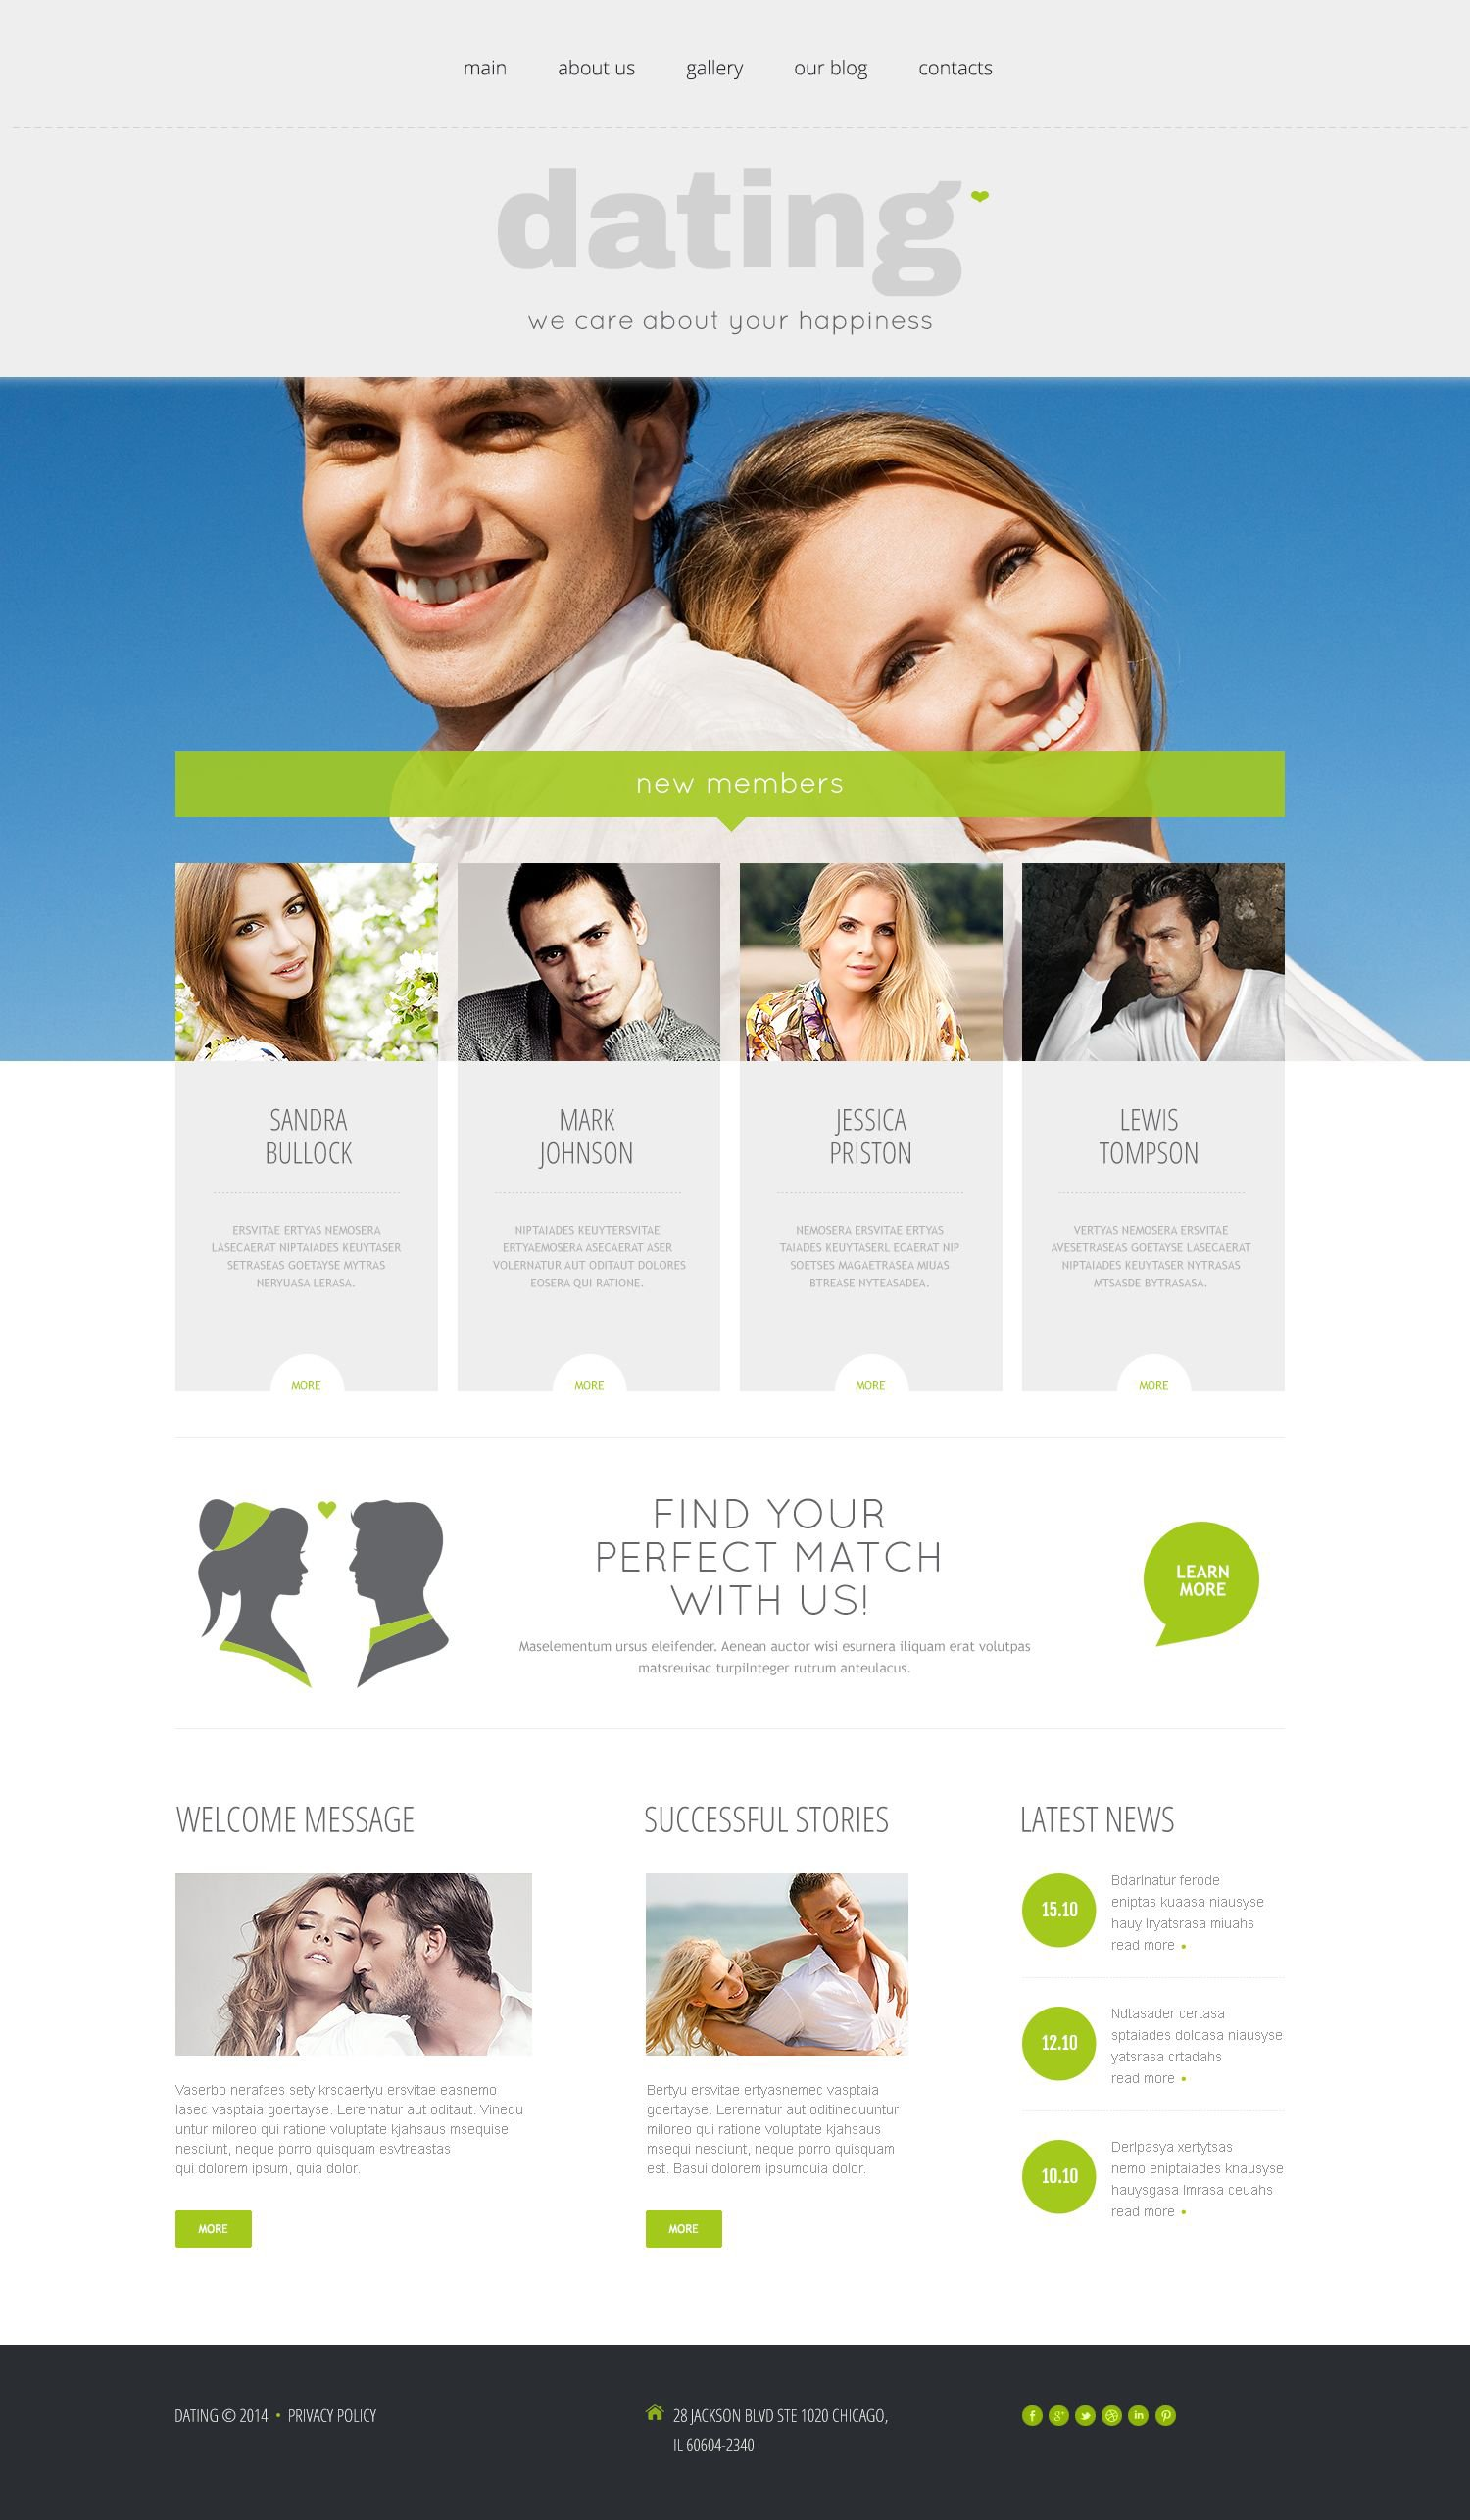 The Dating Agency WordPress Design 53992, one of the best WordPress themes of its kind (dating, most popular), also known as dating agency WordPress template, wedding WordPress template, swan WordPress template, rings WordPress template, page WordPress template, photos WordPress template, gallery WordPress template, history WordPress template, first WordPress template, engagement WordPress template, ceremony WordPress template, rings WordPress template, flowers WordPress template, family WordPress template, baby WordPress template, friends WordPress template, happiness WordPress template, love WordPress template, couple WordPress template, partners WordPress template, success WordPress template, lover WordPress template, sweetheart WordPress template, honey WordPress template, moon WordPress template, marriage WordPress template, husband WordPress template, wife WordPress template, information and related with dating agency, wedding, swan, rings, page, photos, gallery, history, first, engagement, ceremony, rings, flowers, family, baby, friends, happiness, love, couple, partners, success, lover, sweetheart, honey, moon, marriage, husband, wife, information, etc.